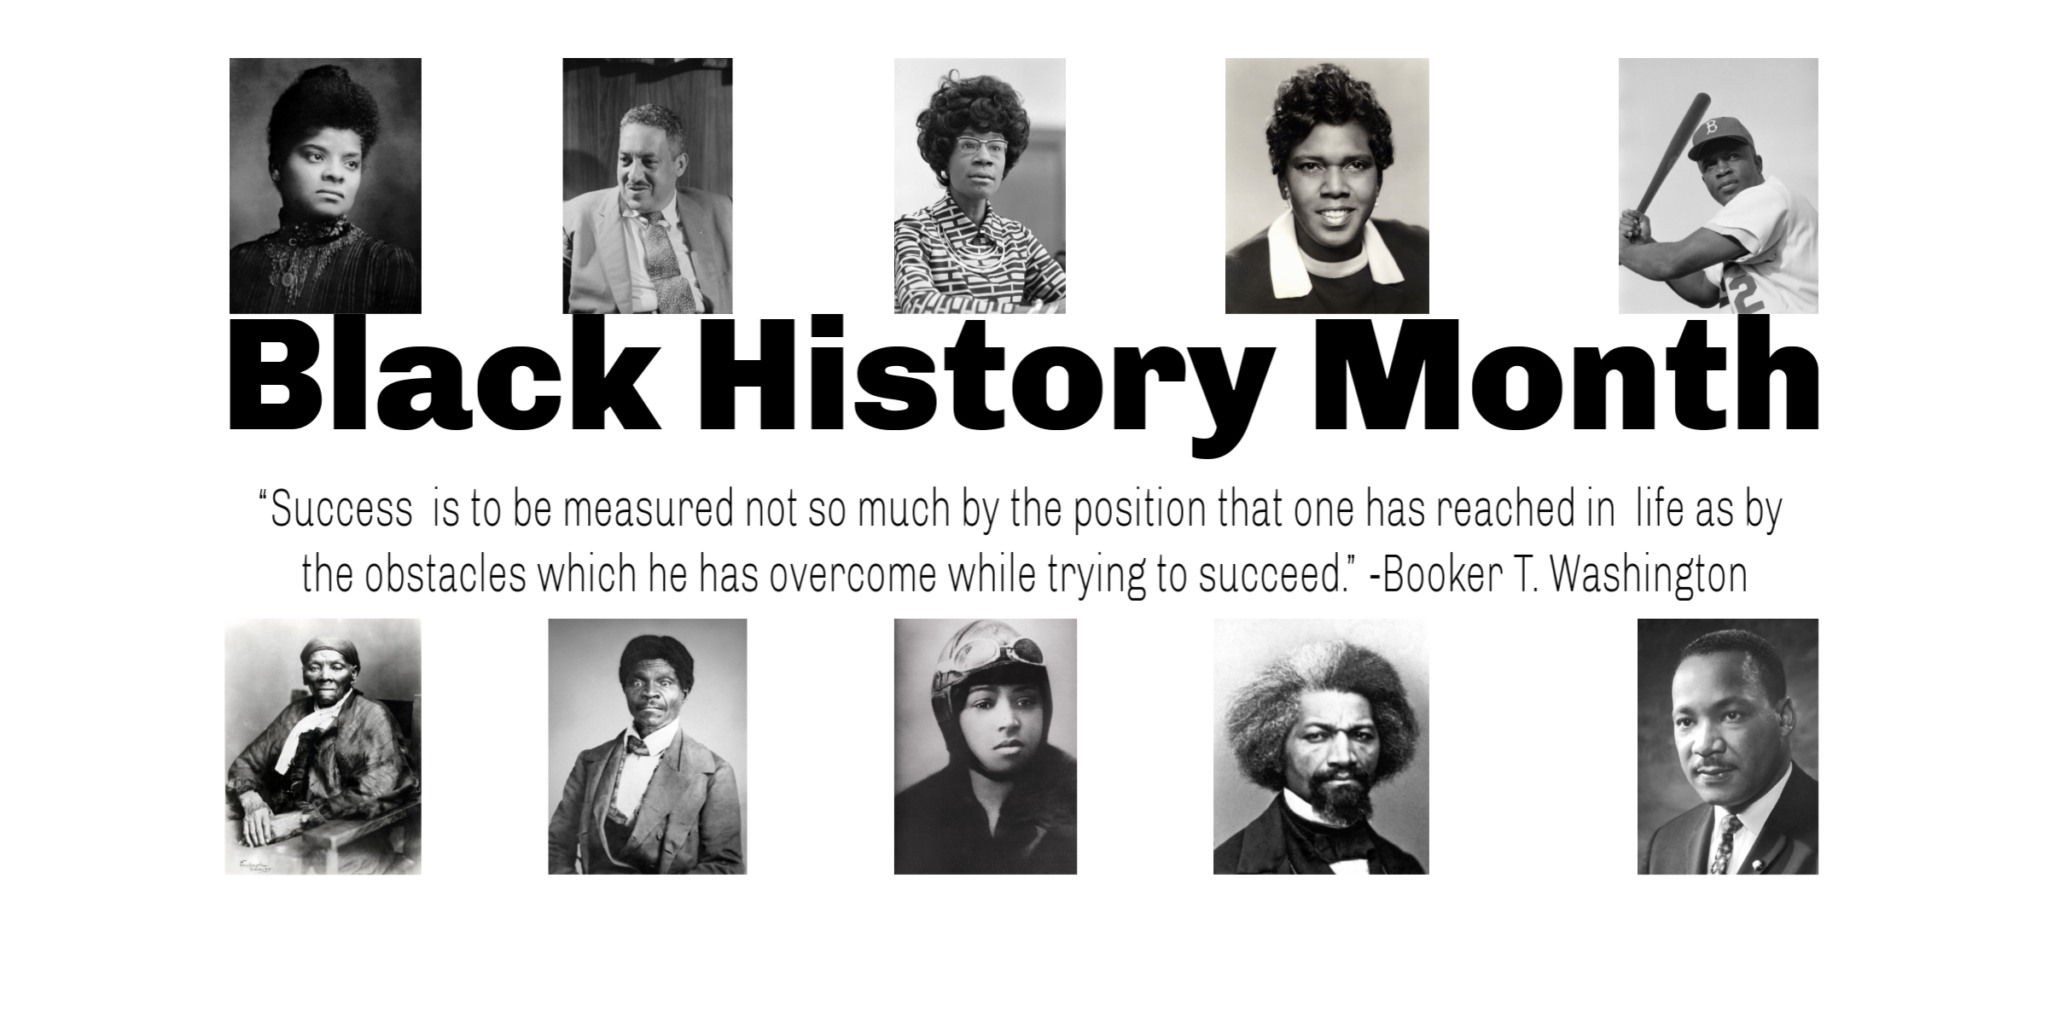 Welcome to Black History Month!